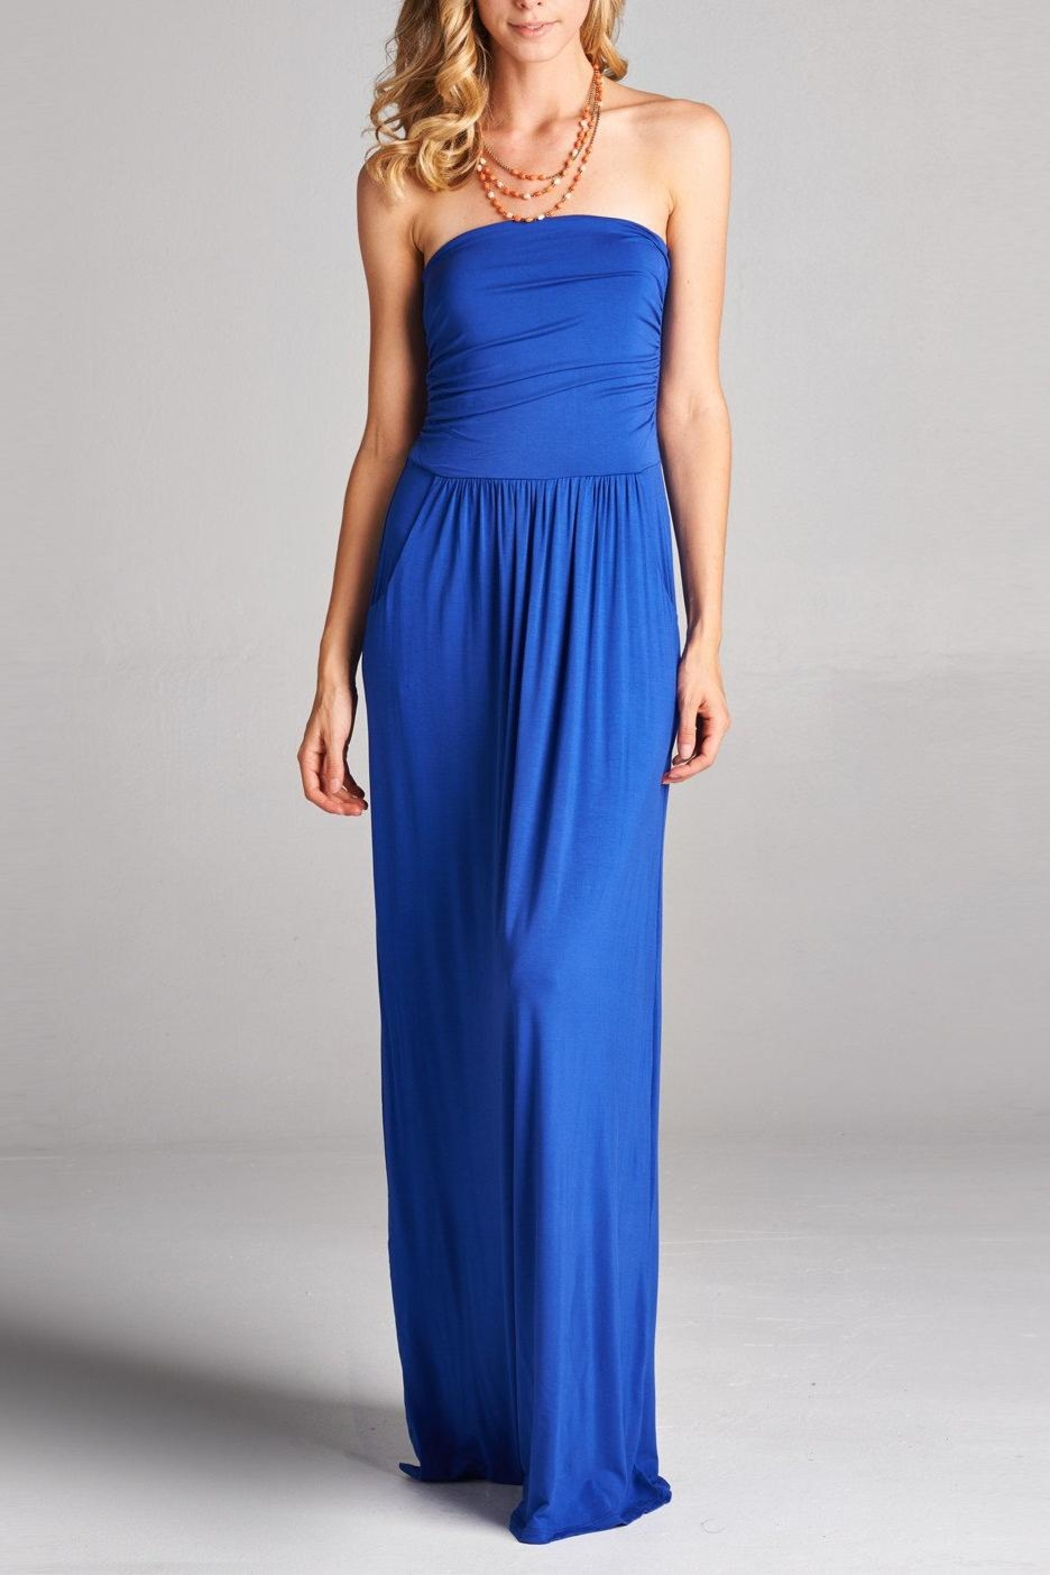 Love Kuza Casual Strapless Maxi Dress - Main Image